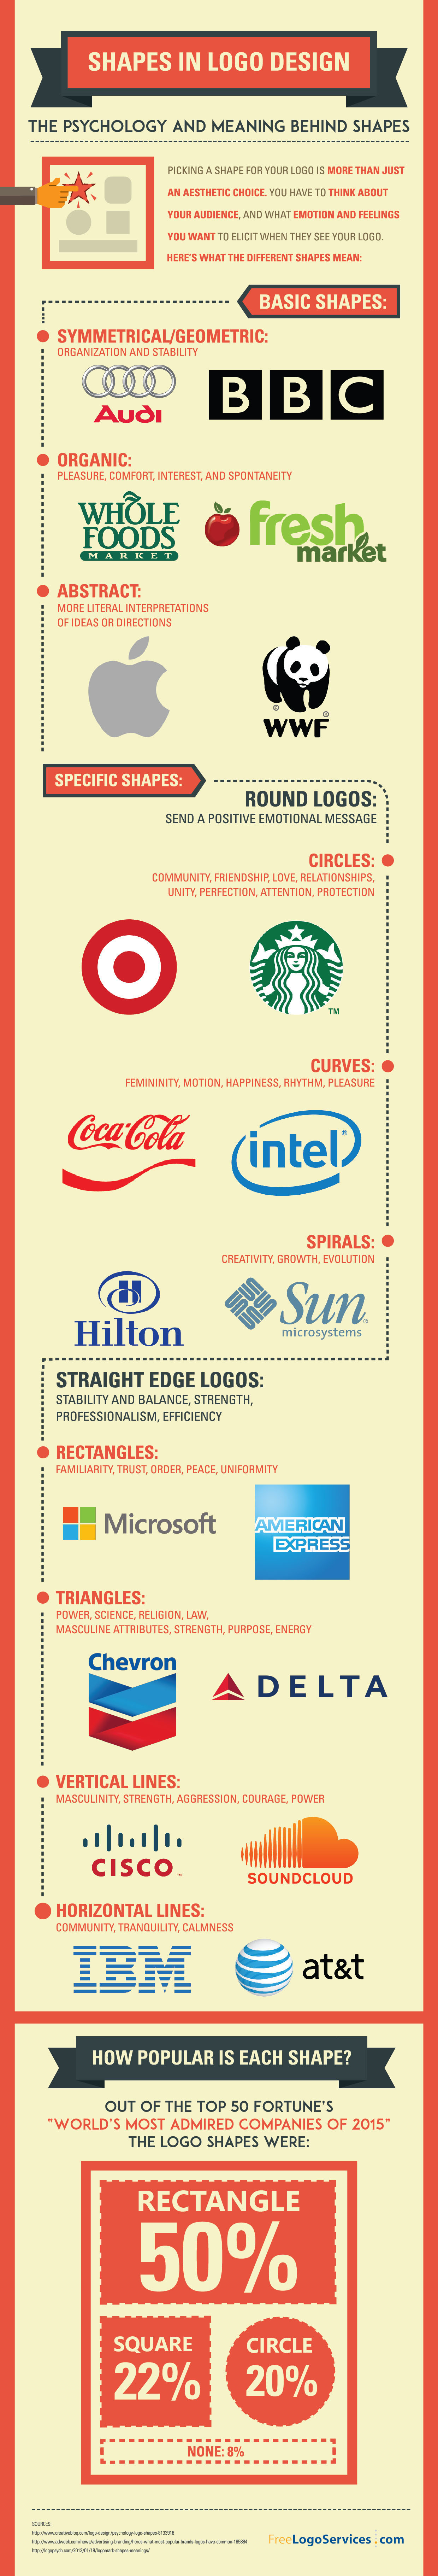 Shapes In Logo Design: The Psychology Meaning Behind Logo Shapes